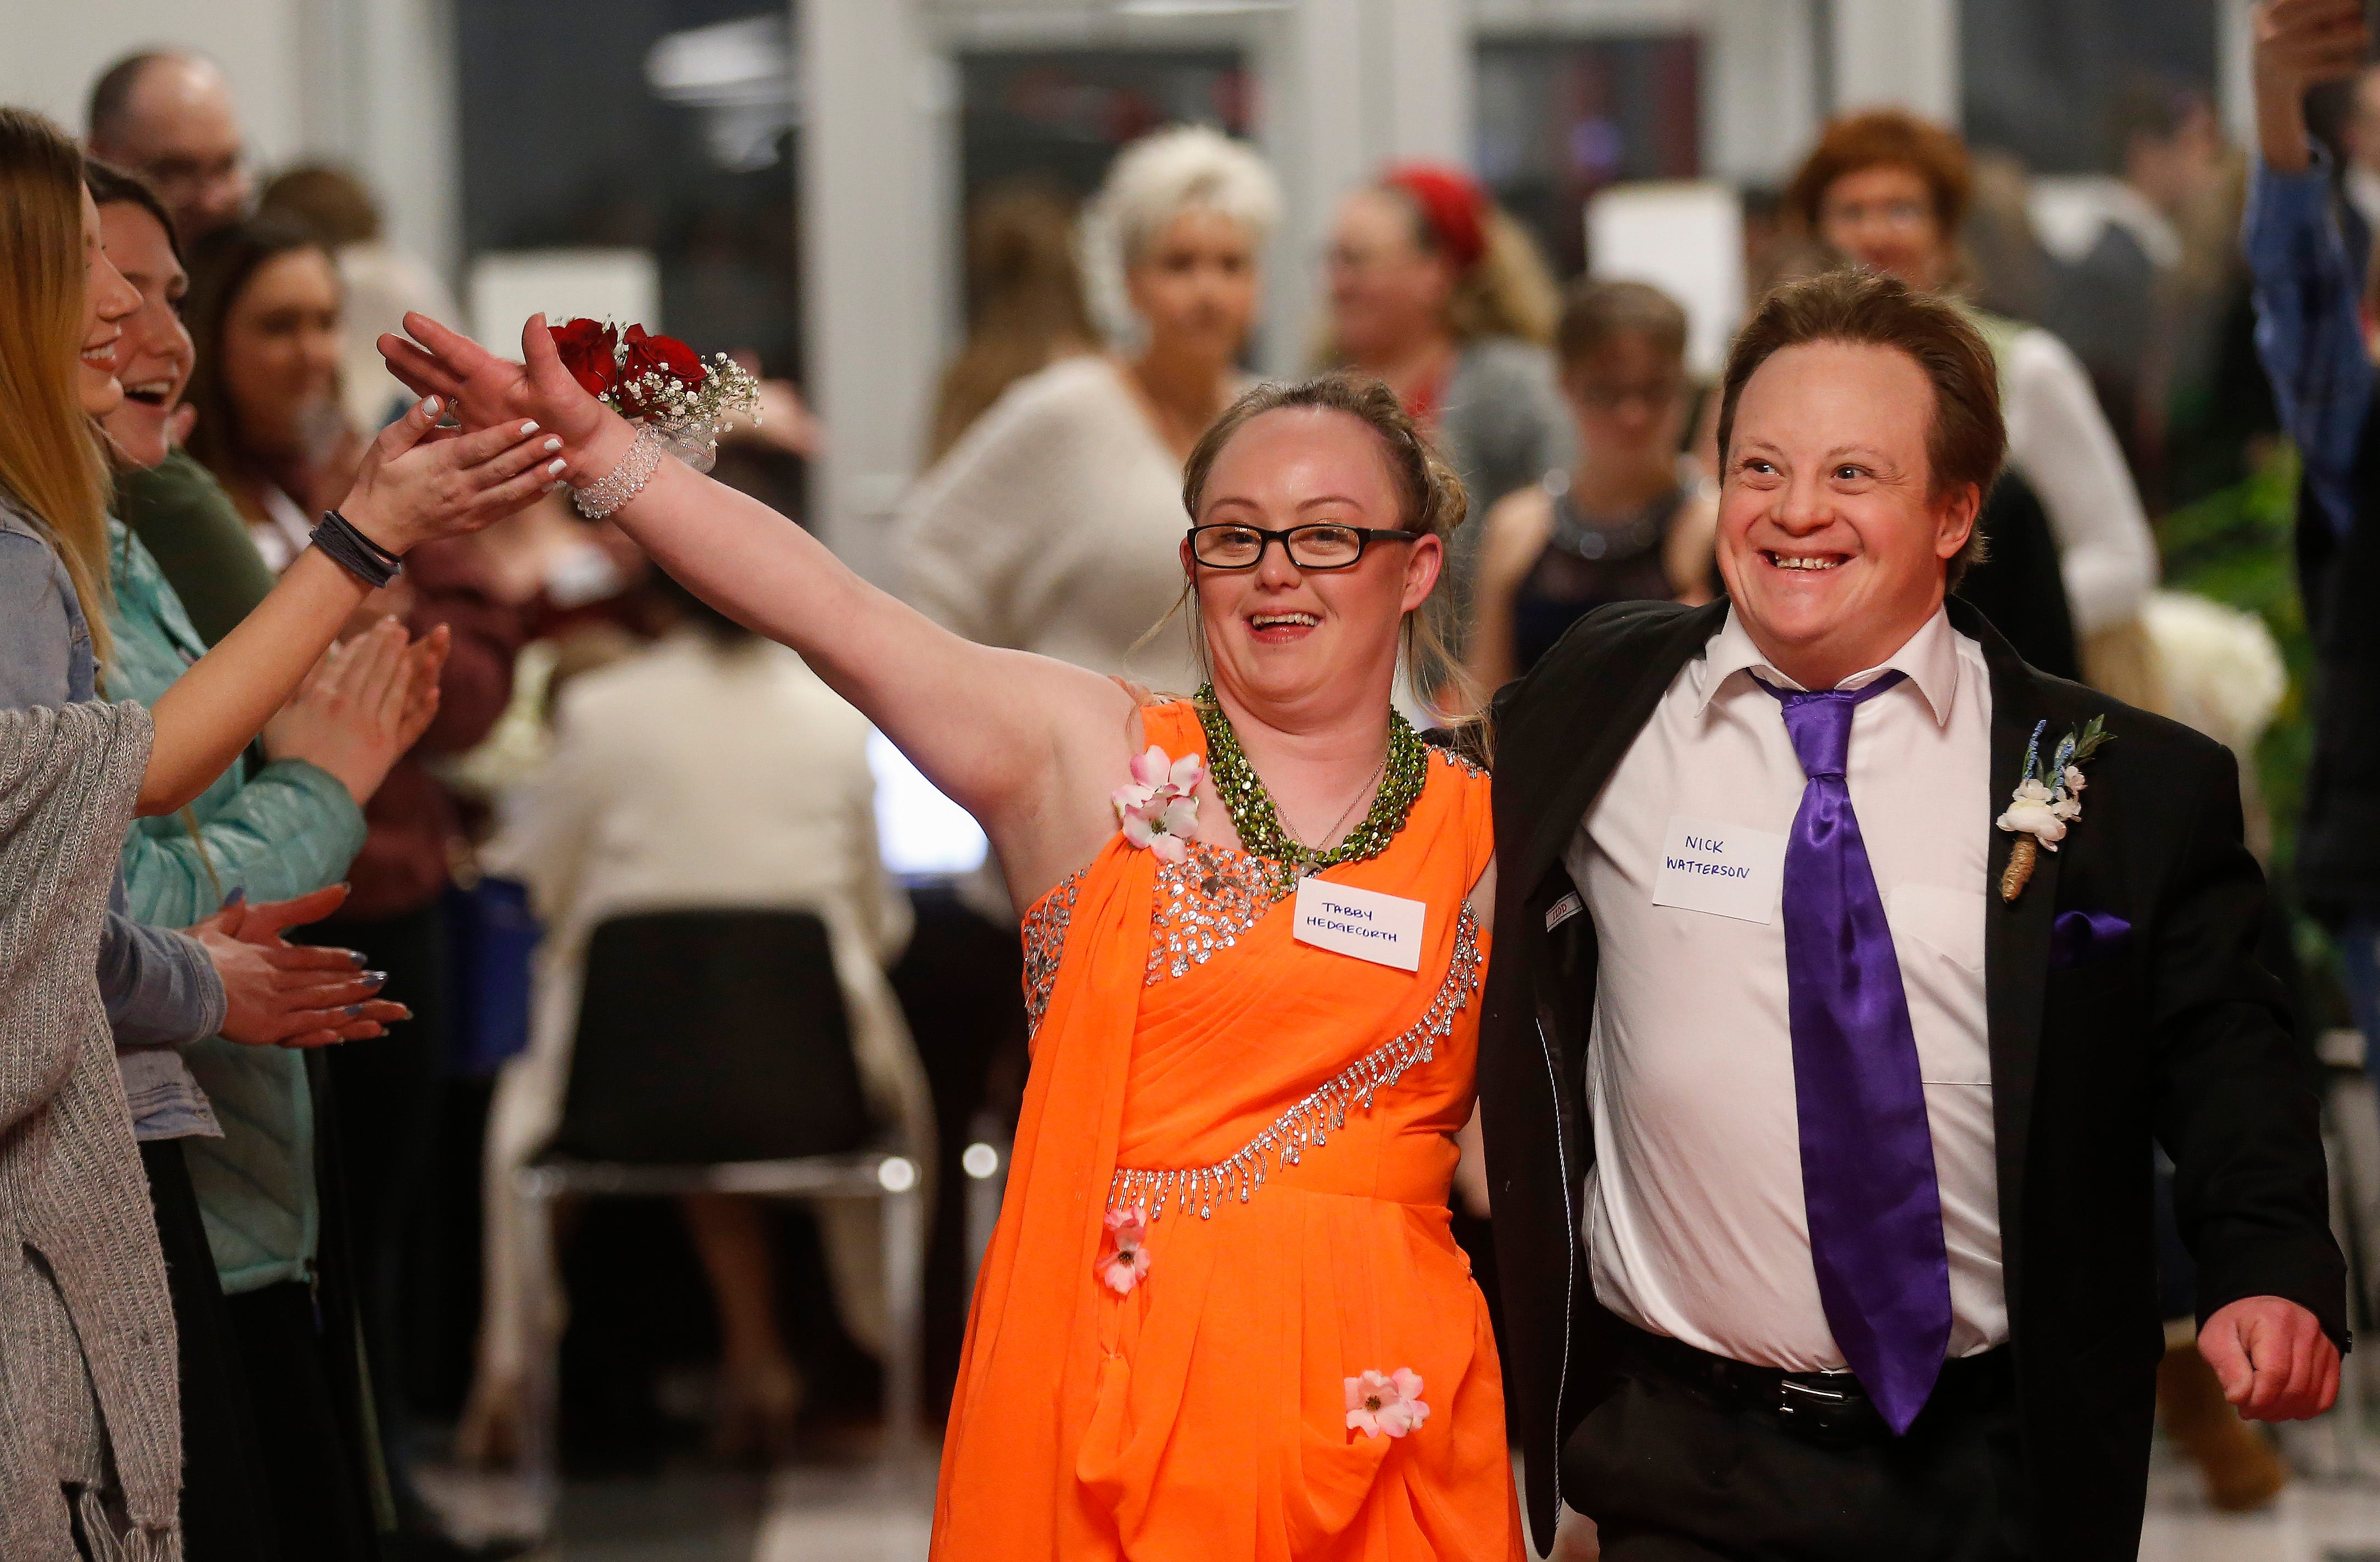 Tabby Hedgecorth and Nick Watterson smile and wave as they walk arm-in-arm down the red carpet at the Camp Barnabas Snow Ball at Springfield Catholic High School on Saturday, Jan. 26, 2019.